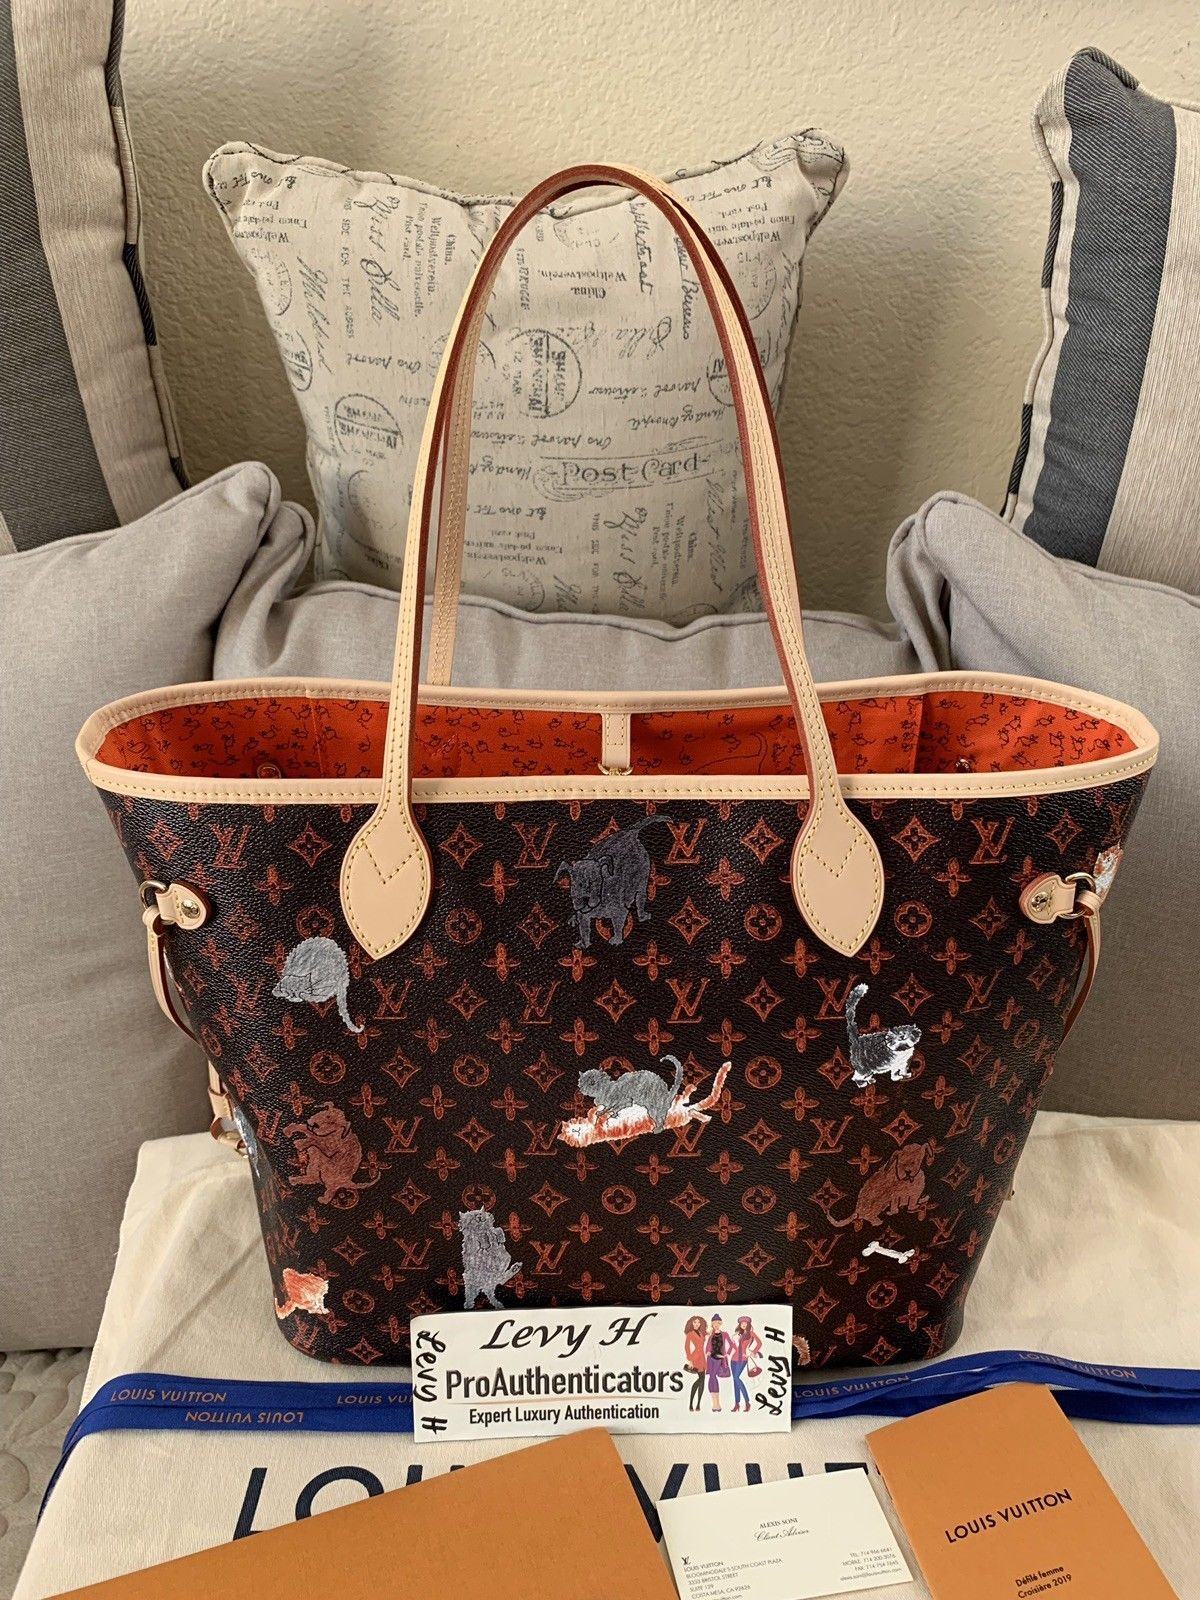 Experts Guide To Buying An Authentic Louis Vuitton Handbag >> Details About Authentic Louis Vuitton Neverfull Mm Shoulder Tote Bag